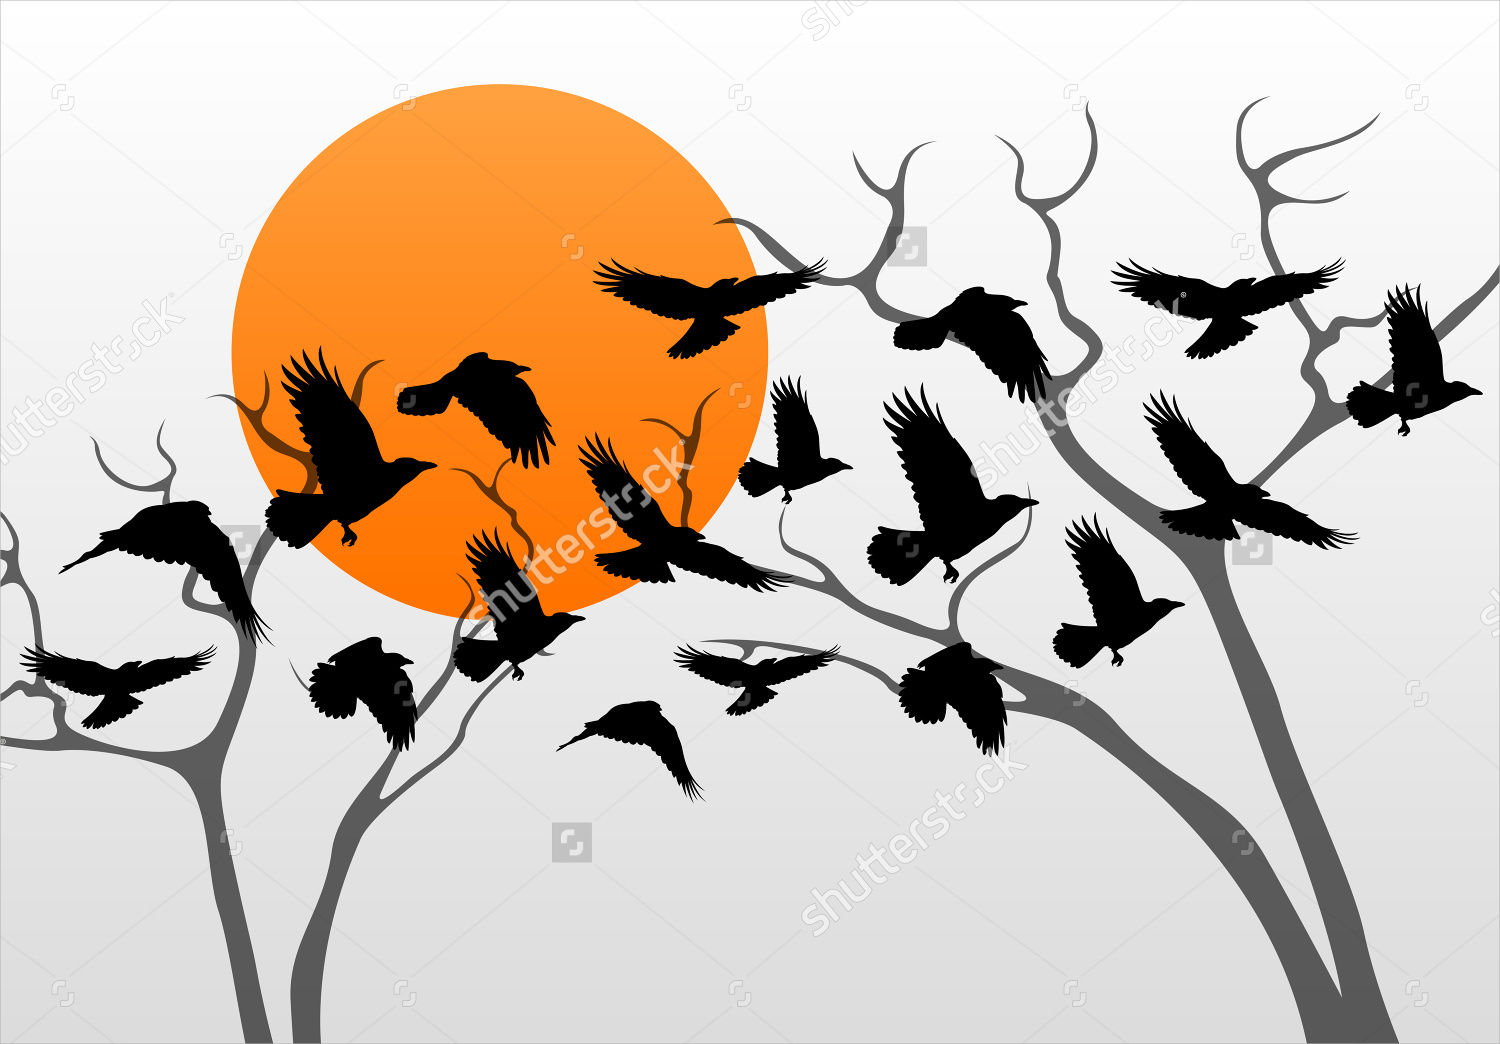 9 Crow Silhouette Designs - Vector, EPS Format Download ...